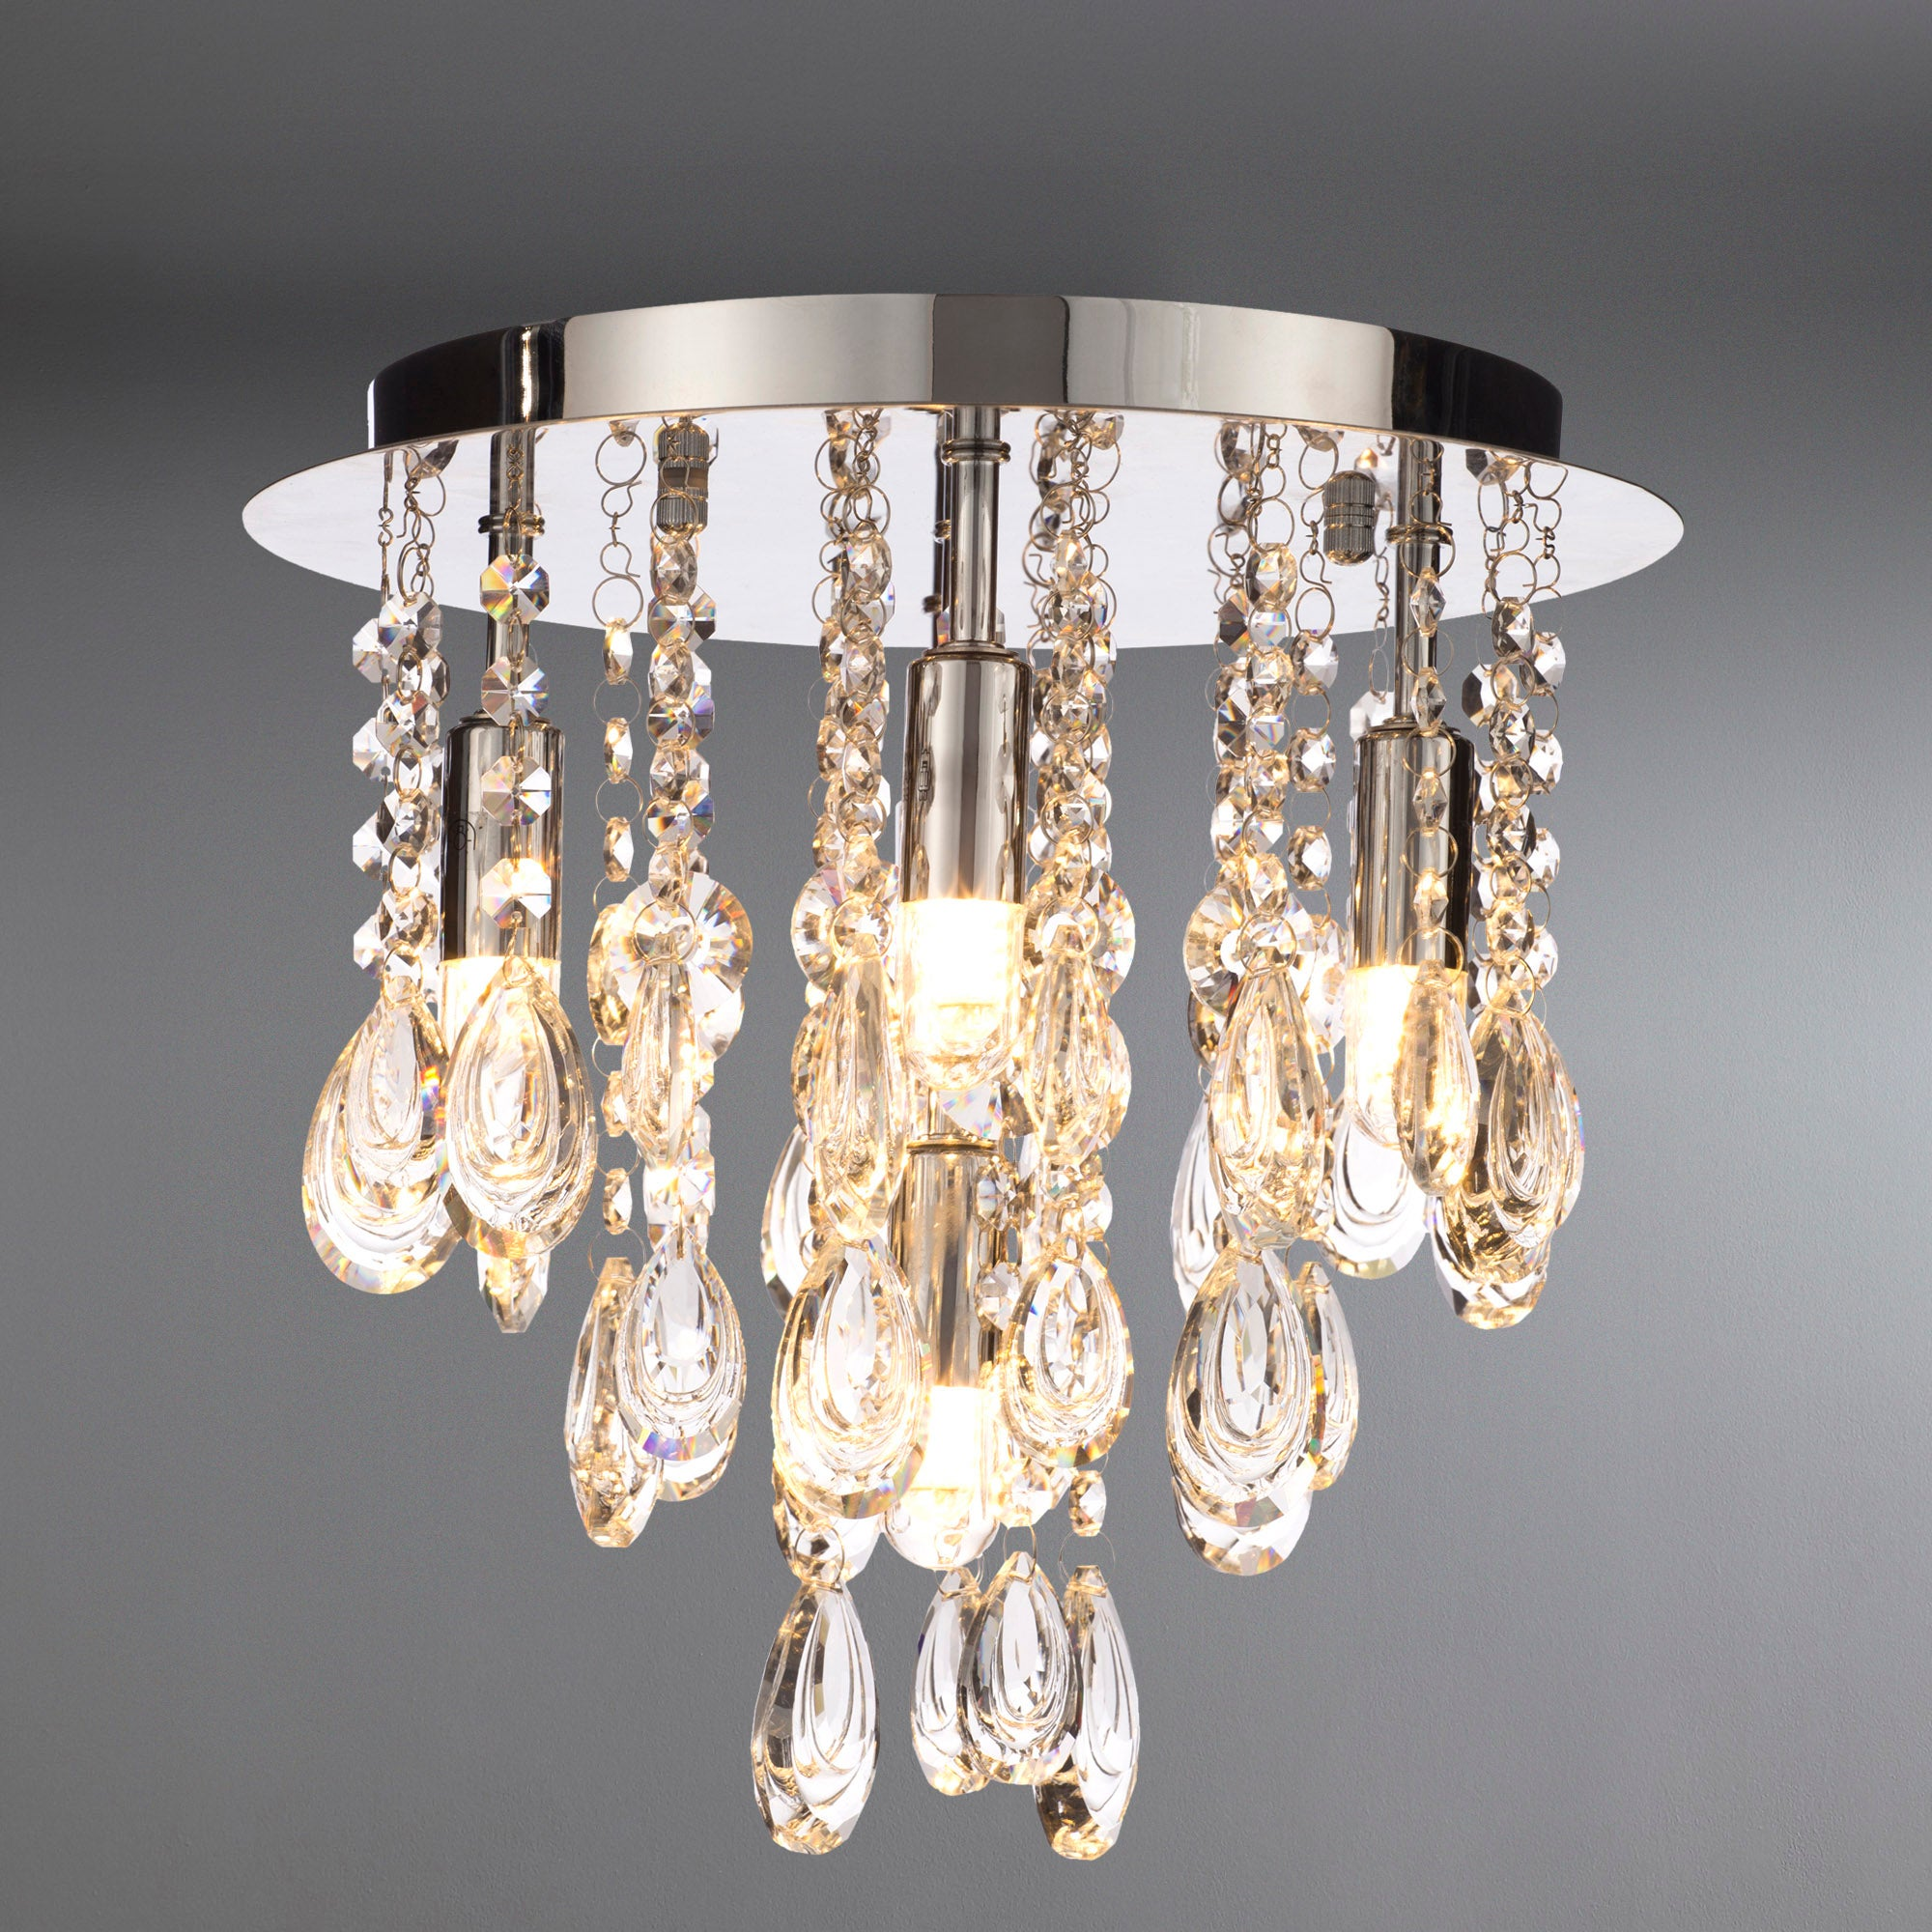 Image of Marquis by Waterford Liffey Chrome 5 Light Flush Ceiling Fitting Chrome